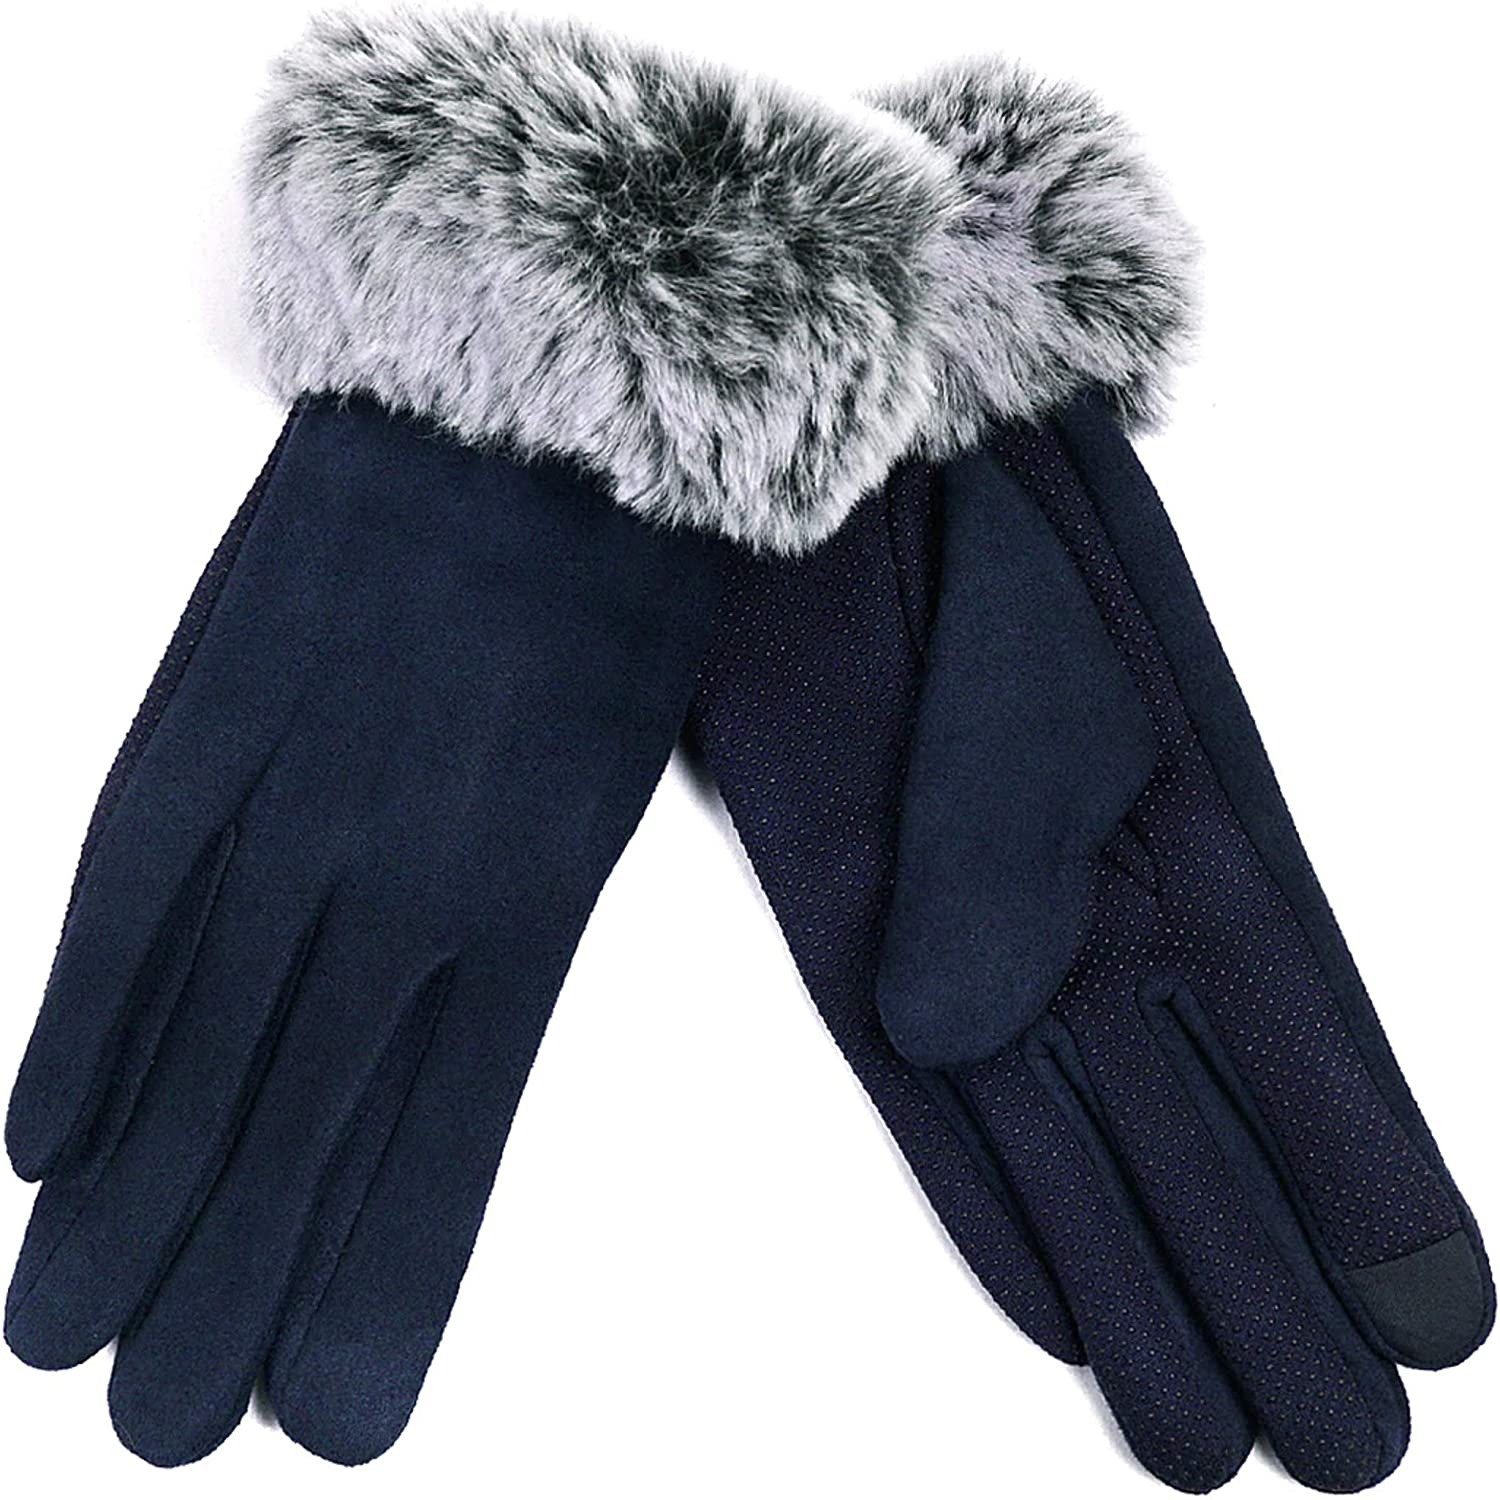 Women's Winter Gloves - Faux Fur Ombre Cuff - Touch Screen - Plush & Soft Interior - SIZE: Large/X-Lareg